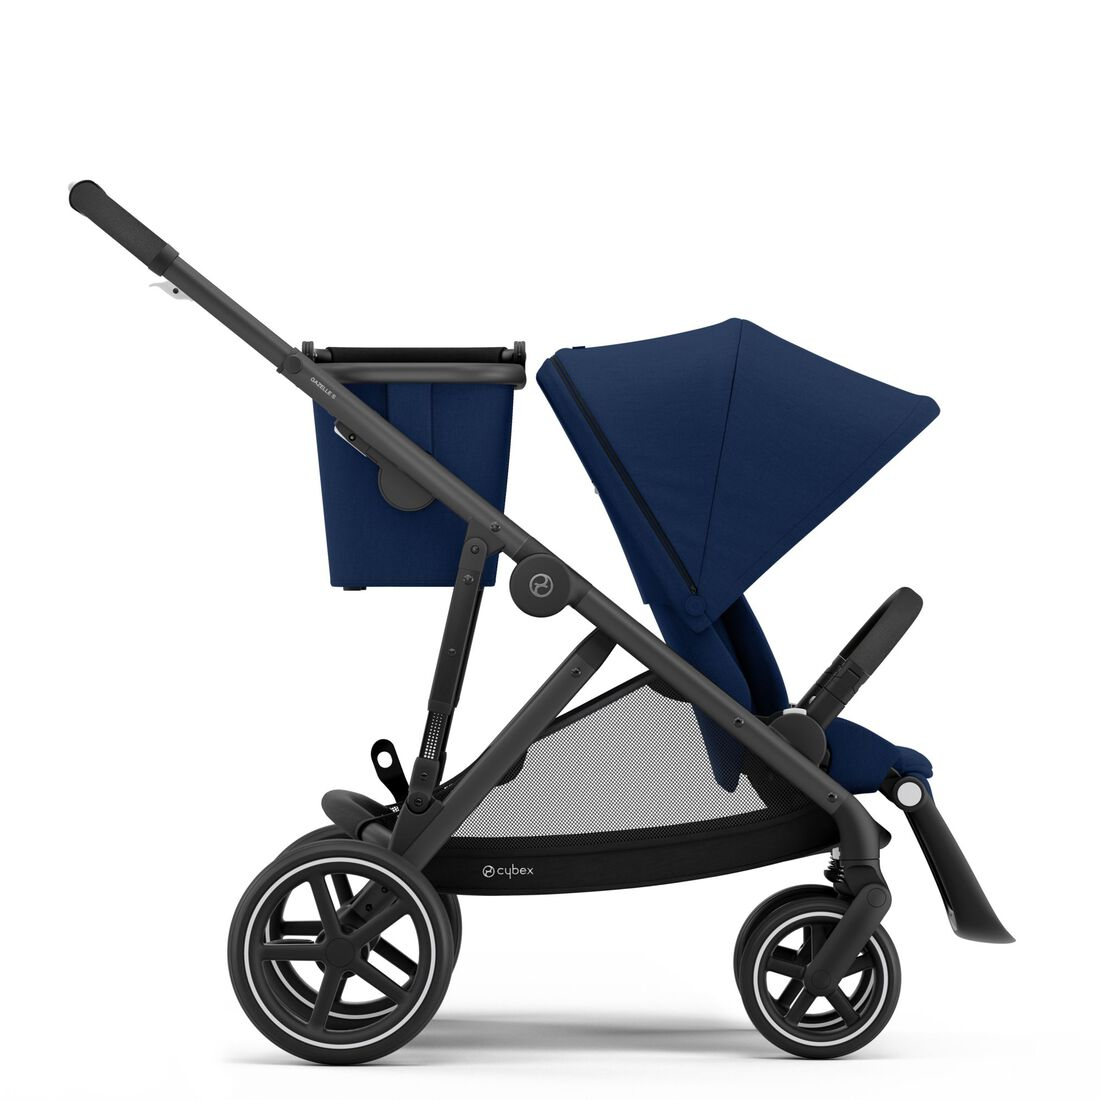 CYBEX Gazelle S - Navy Blue (Schwarzer Rahmen) in Navy Blue (Black Frame) large Bild 1